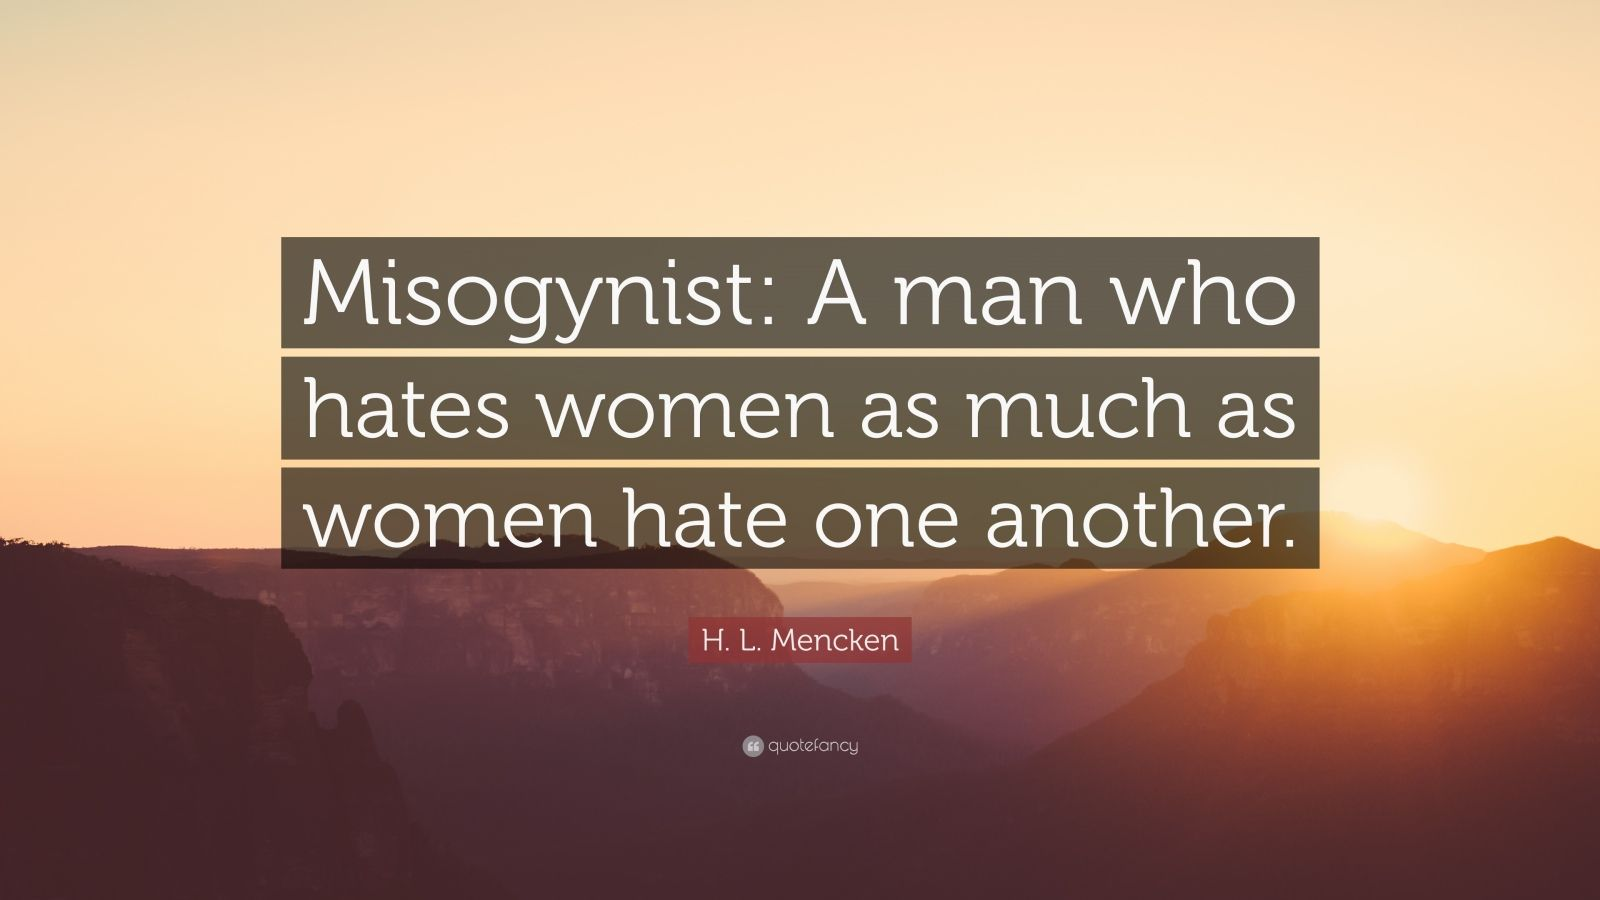 """H. L. Mencken Quote: """"Misogynist: A man who hates women as much as women hate one another."""""""